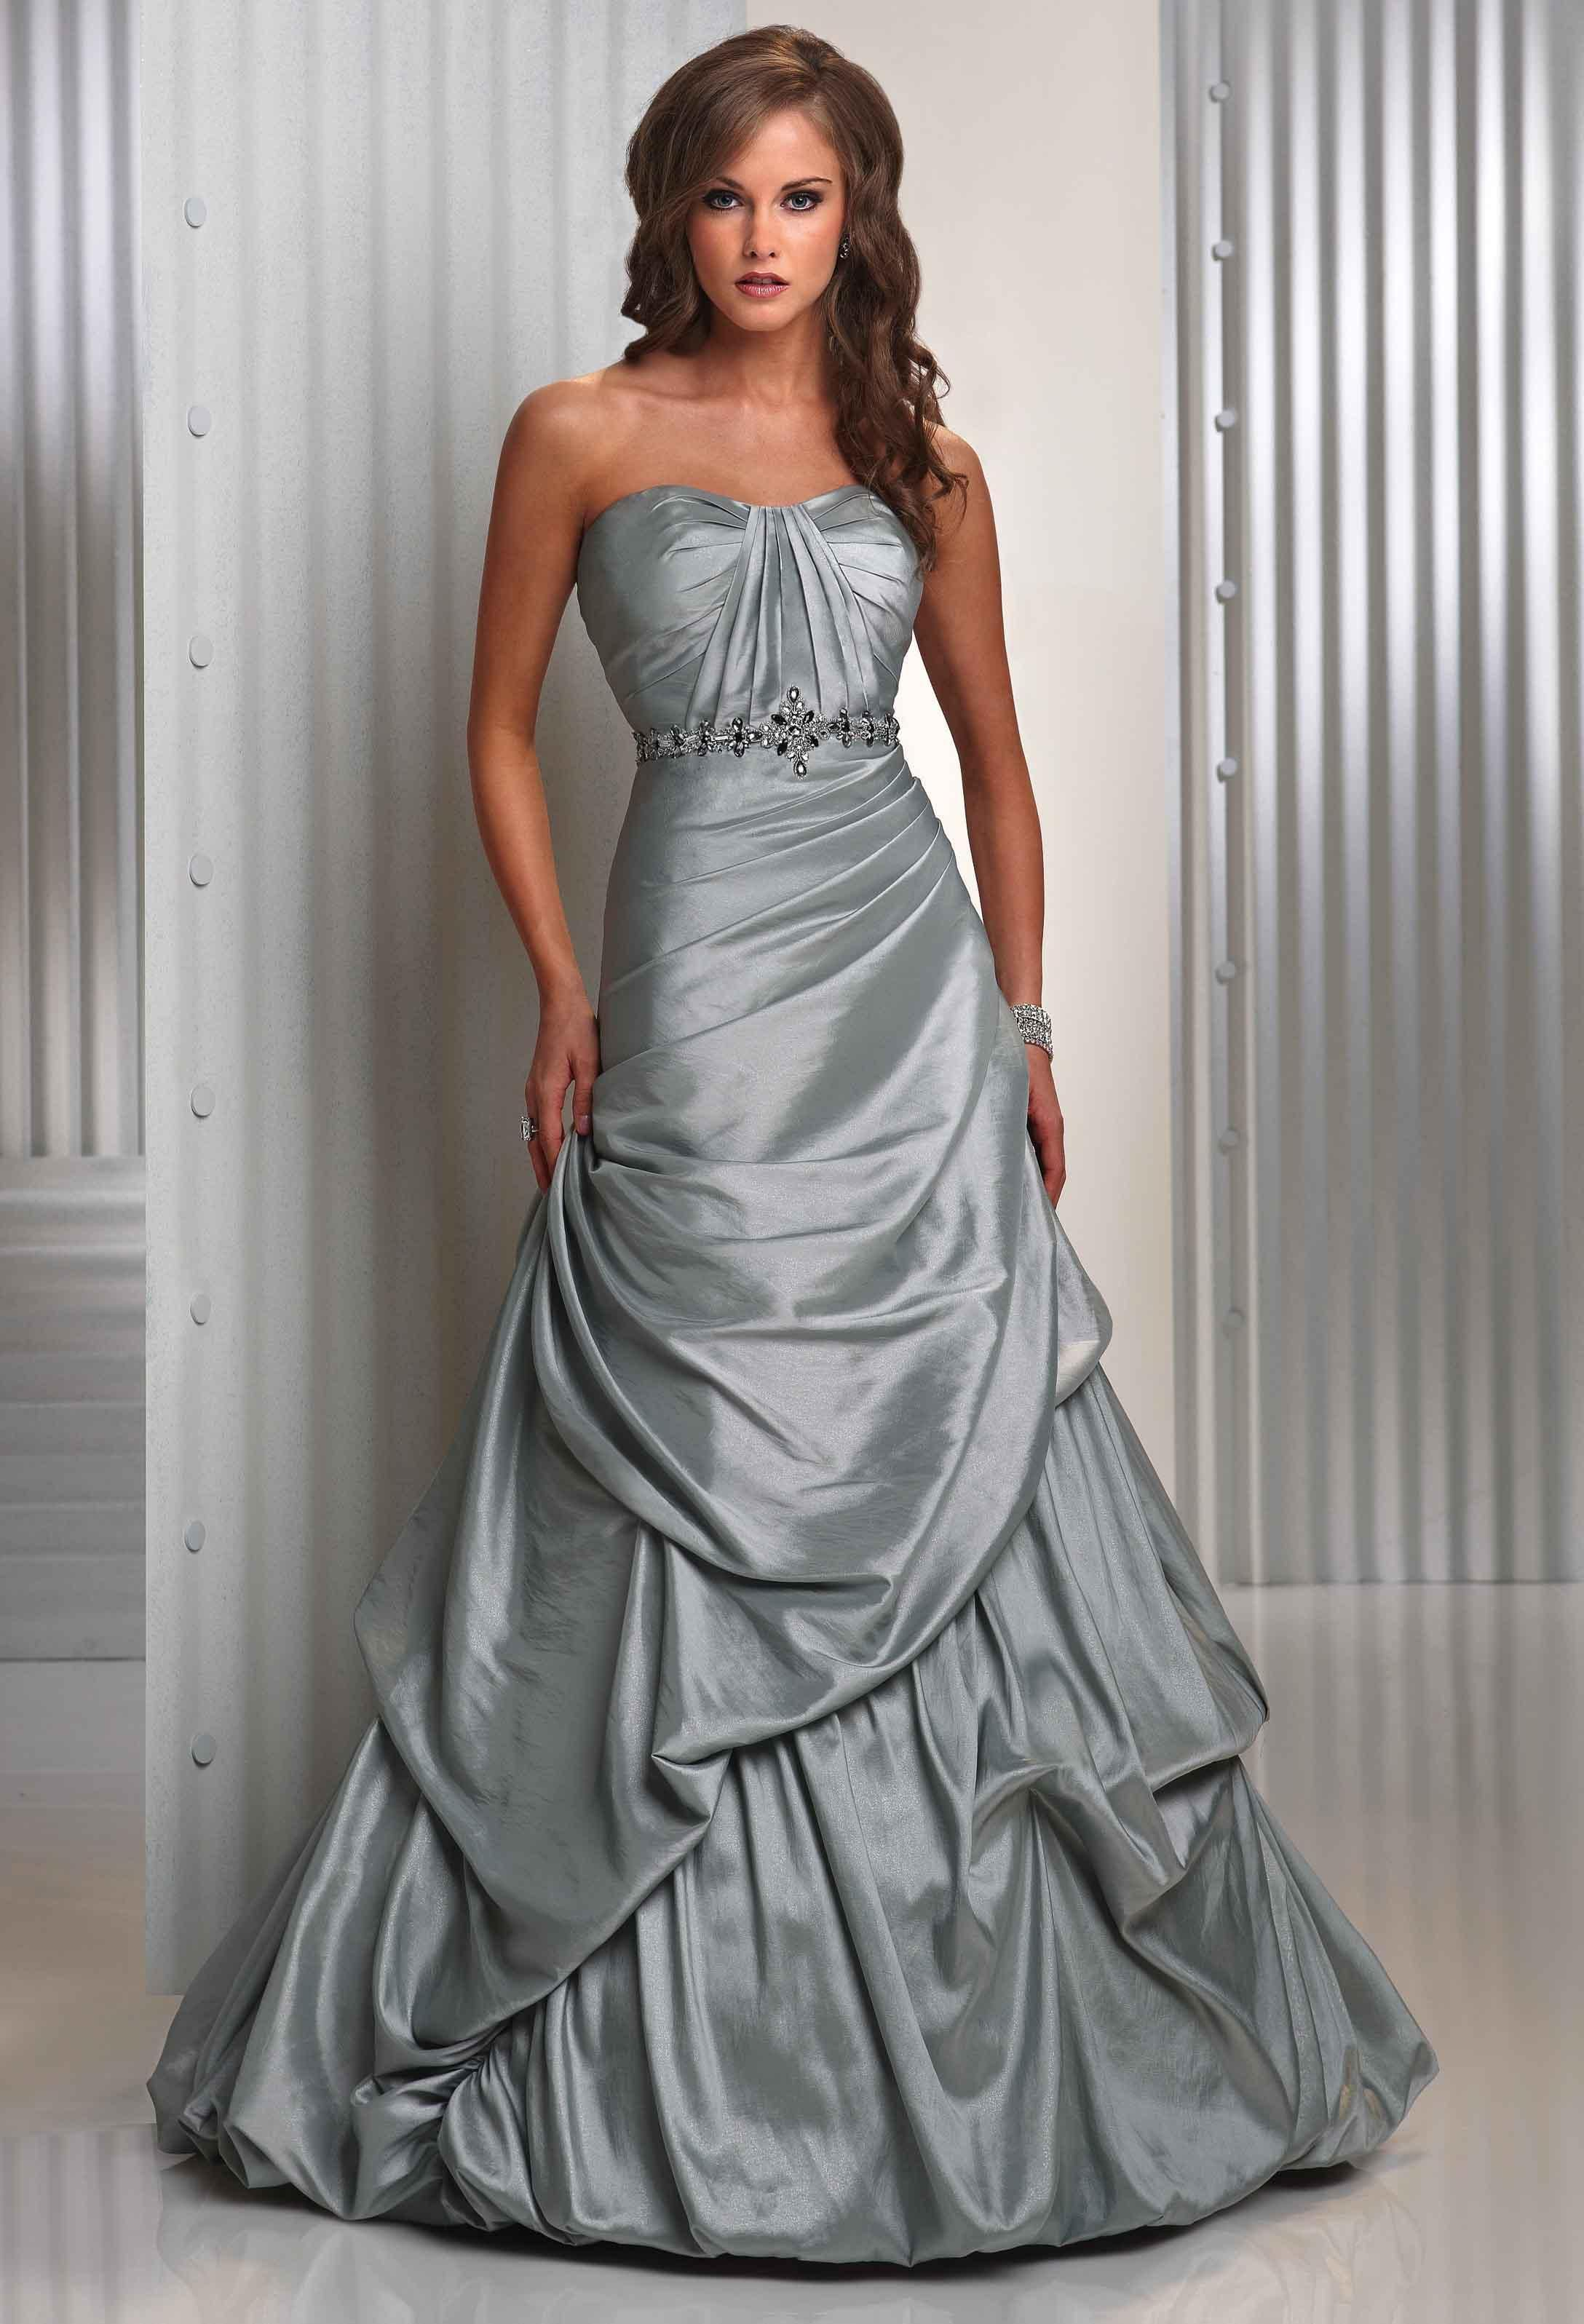 Evening dresses silver shimmer taffeta strapless for Silver wedding dresses 25th anniversary